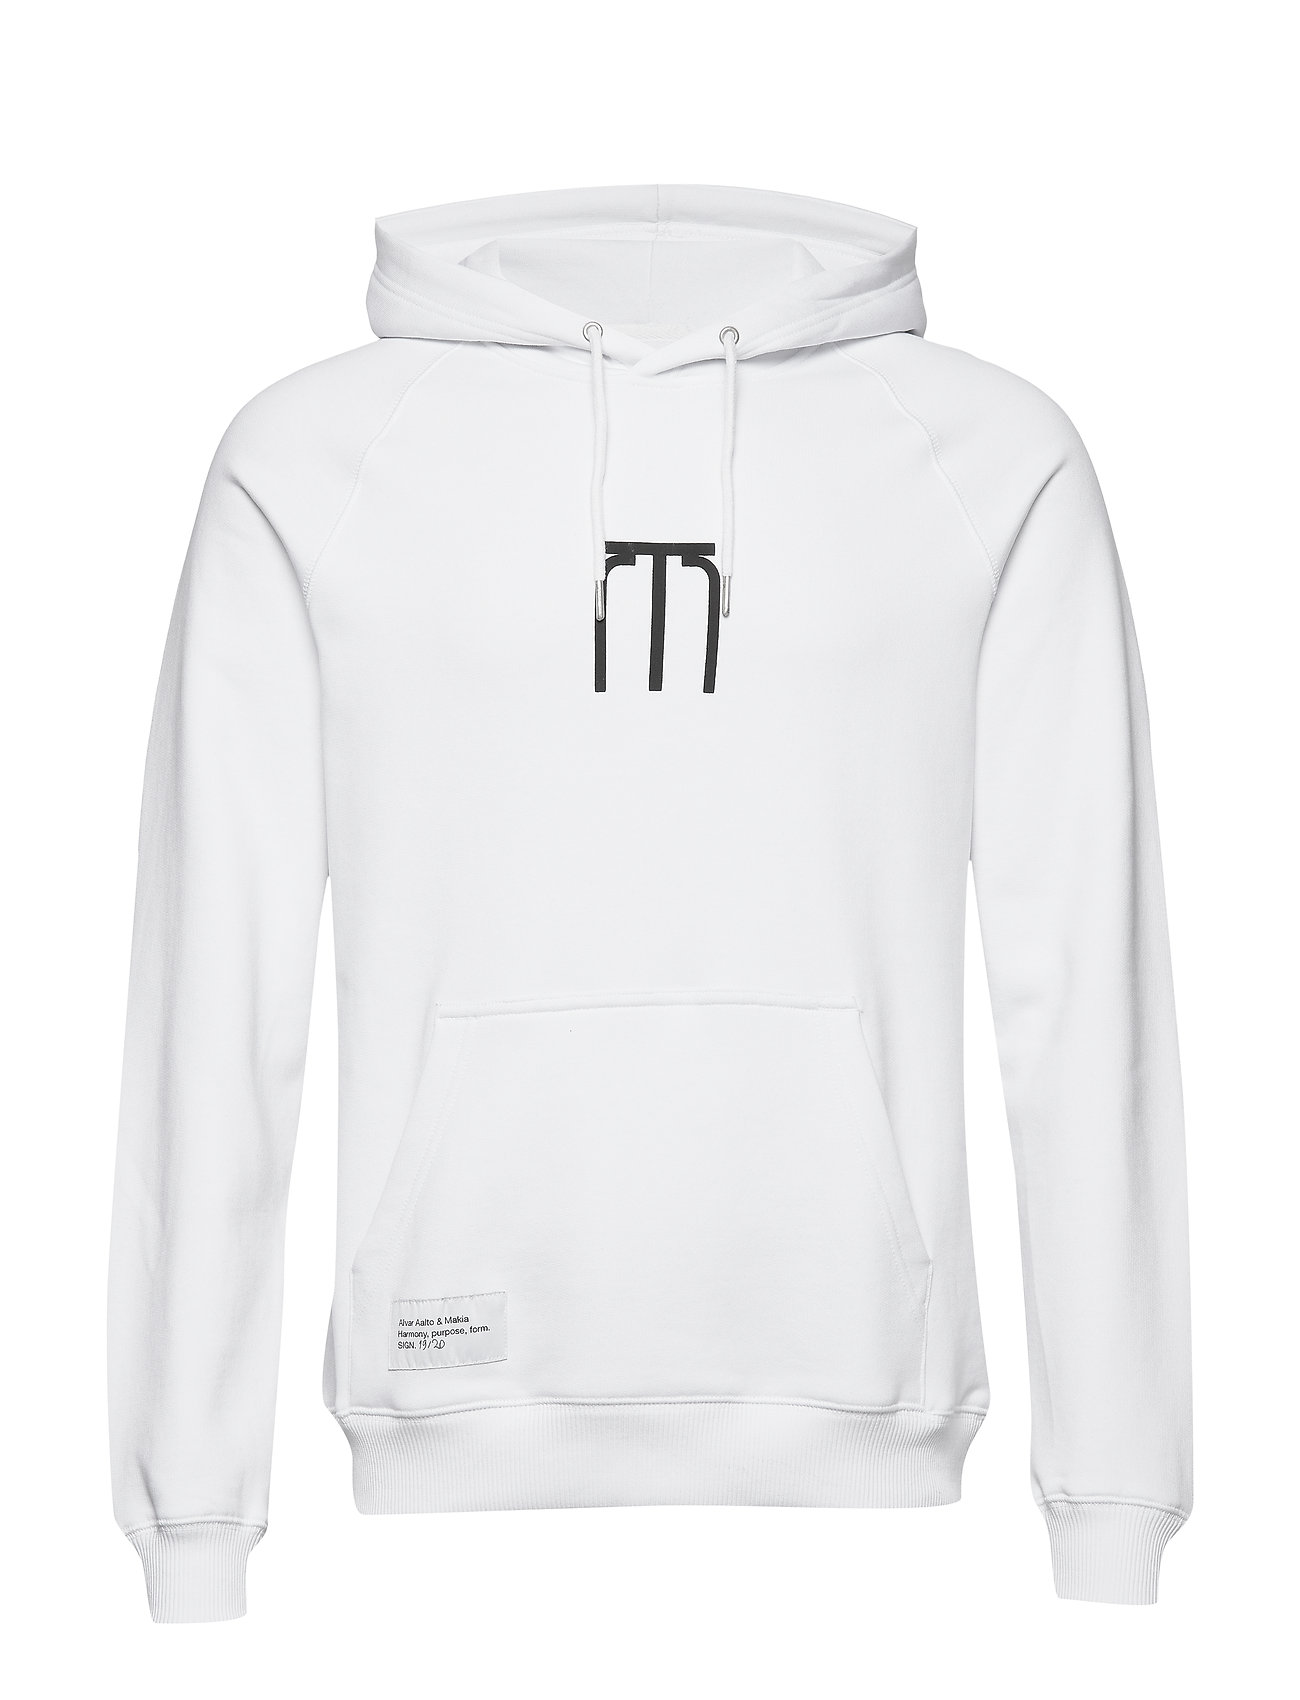 Makia Stool Hooded Sweatshirt - WHITE